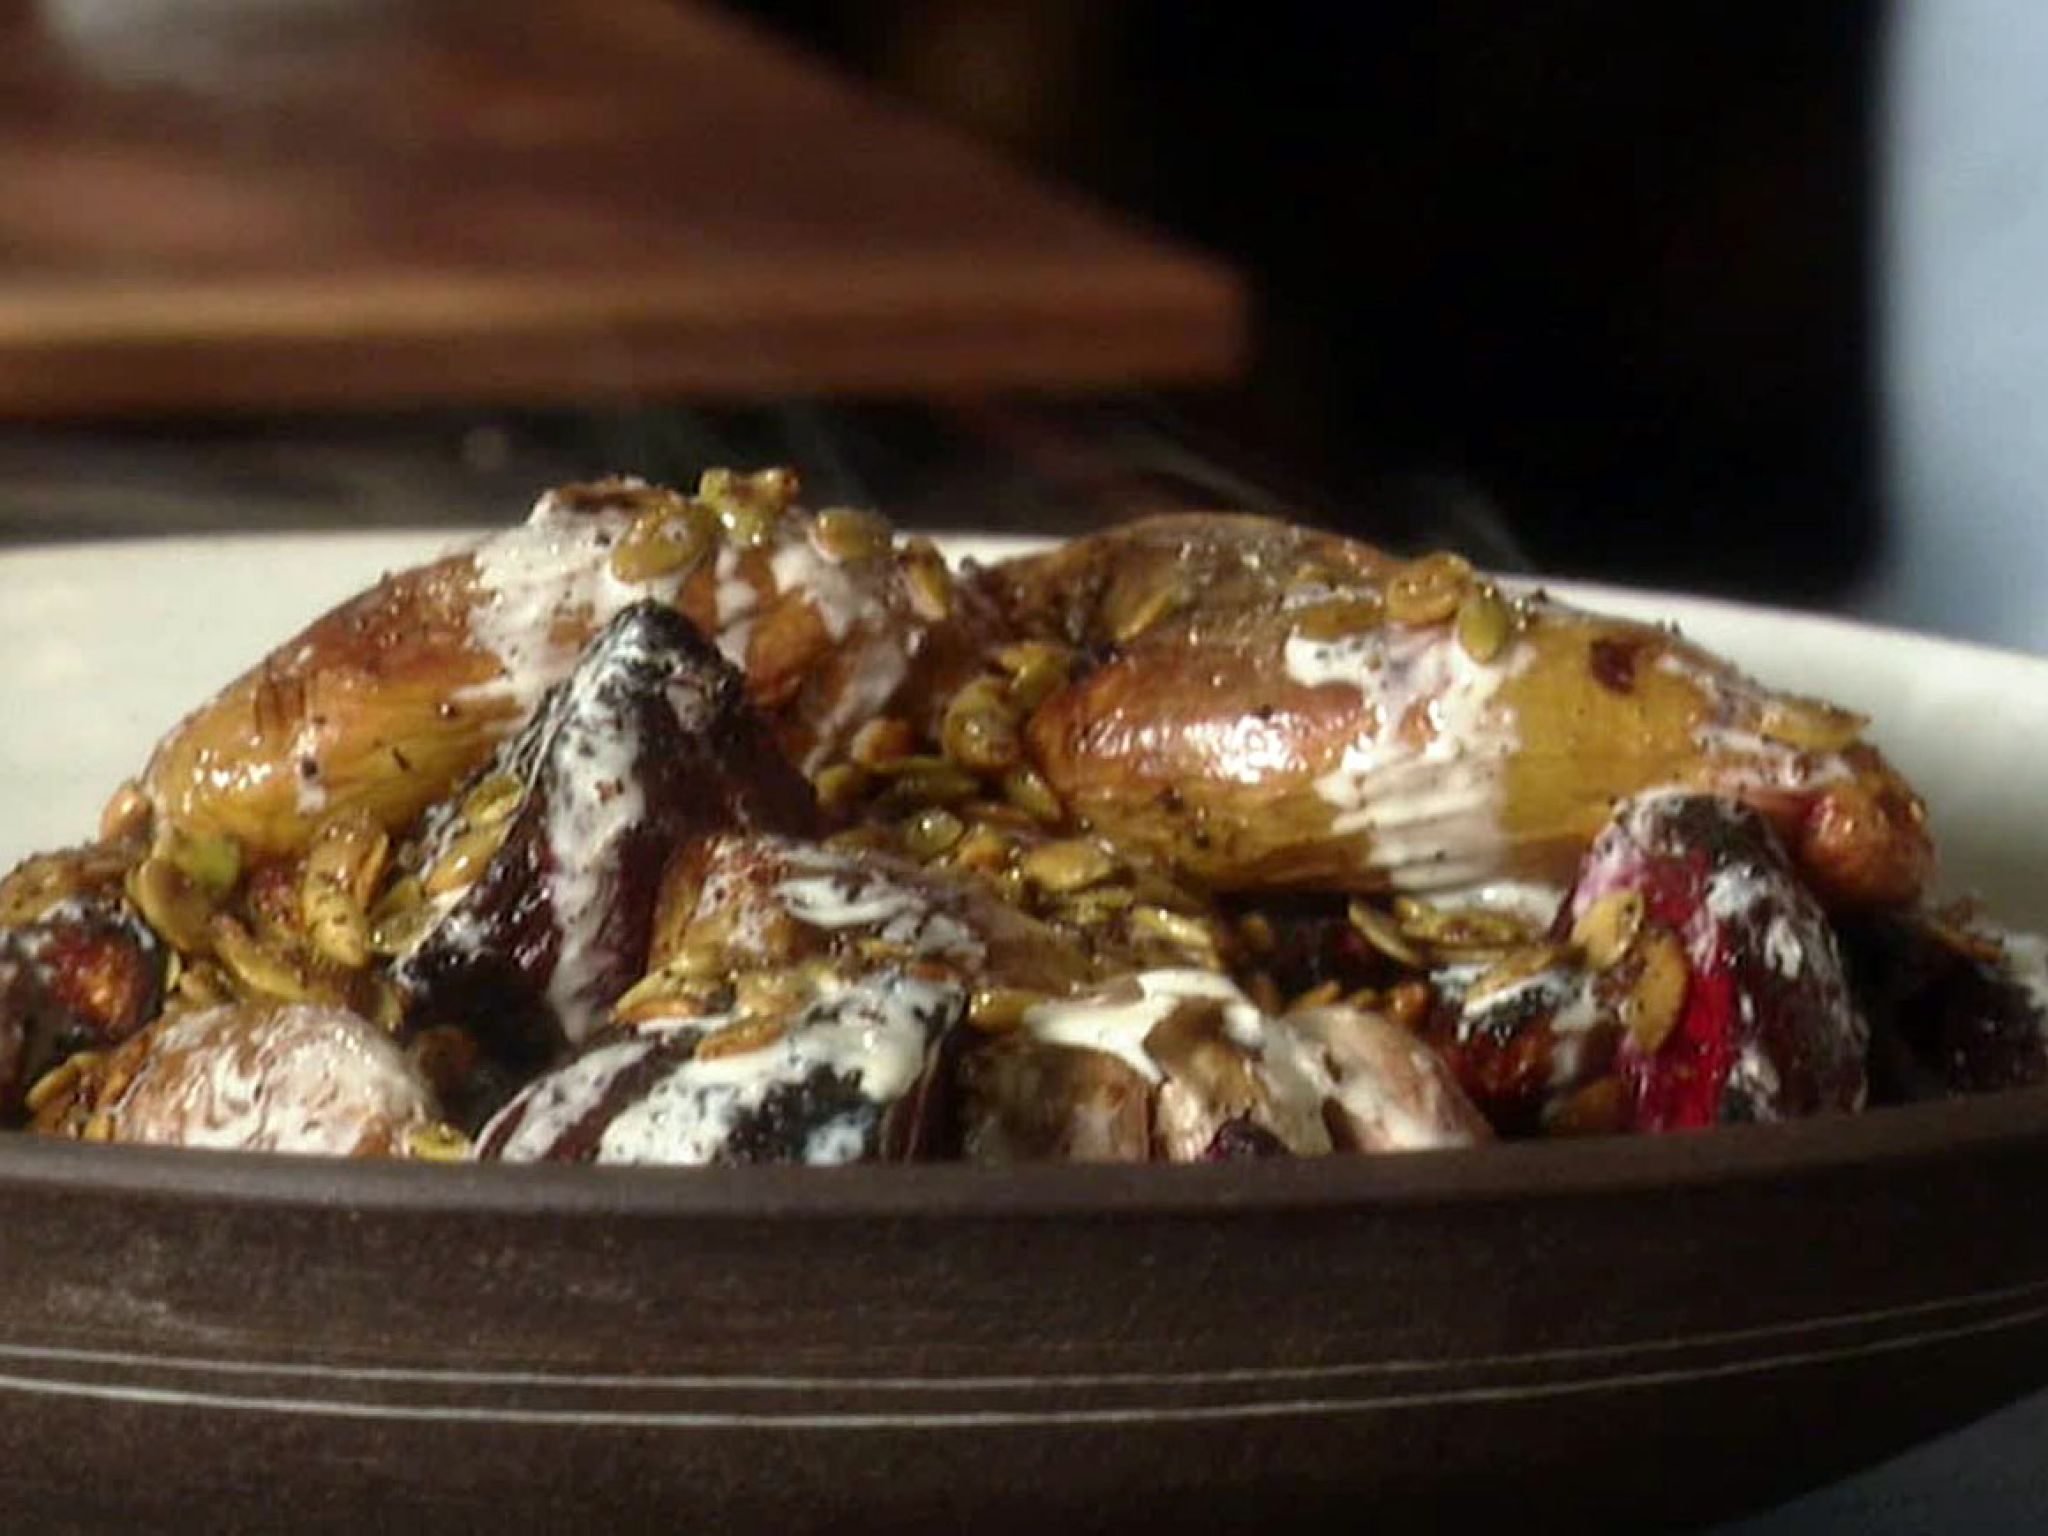 Roasted Root Vegetables with Spicy Pepitas and Horseradish Creme Fraiche recipe from Guy Fieri via Food Network